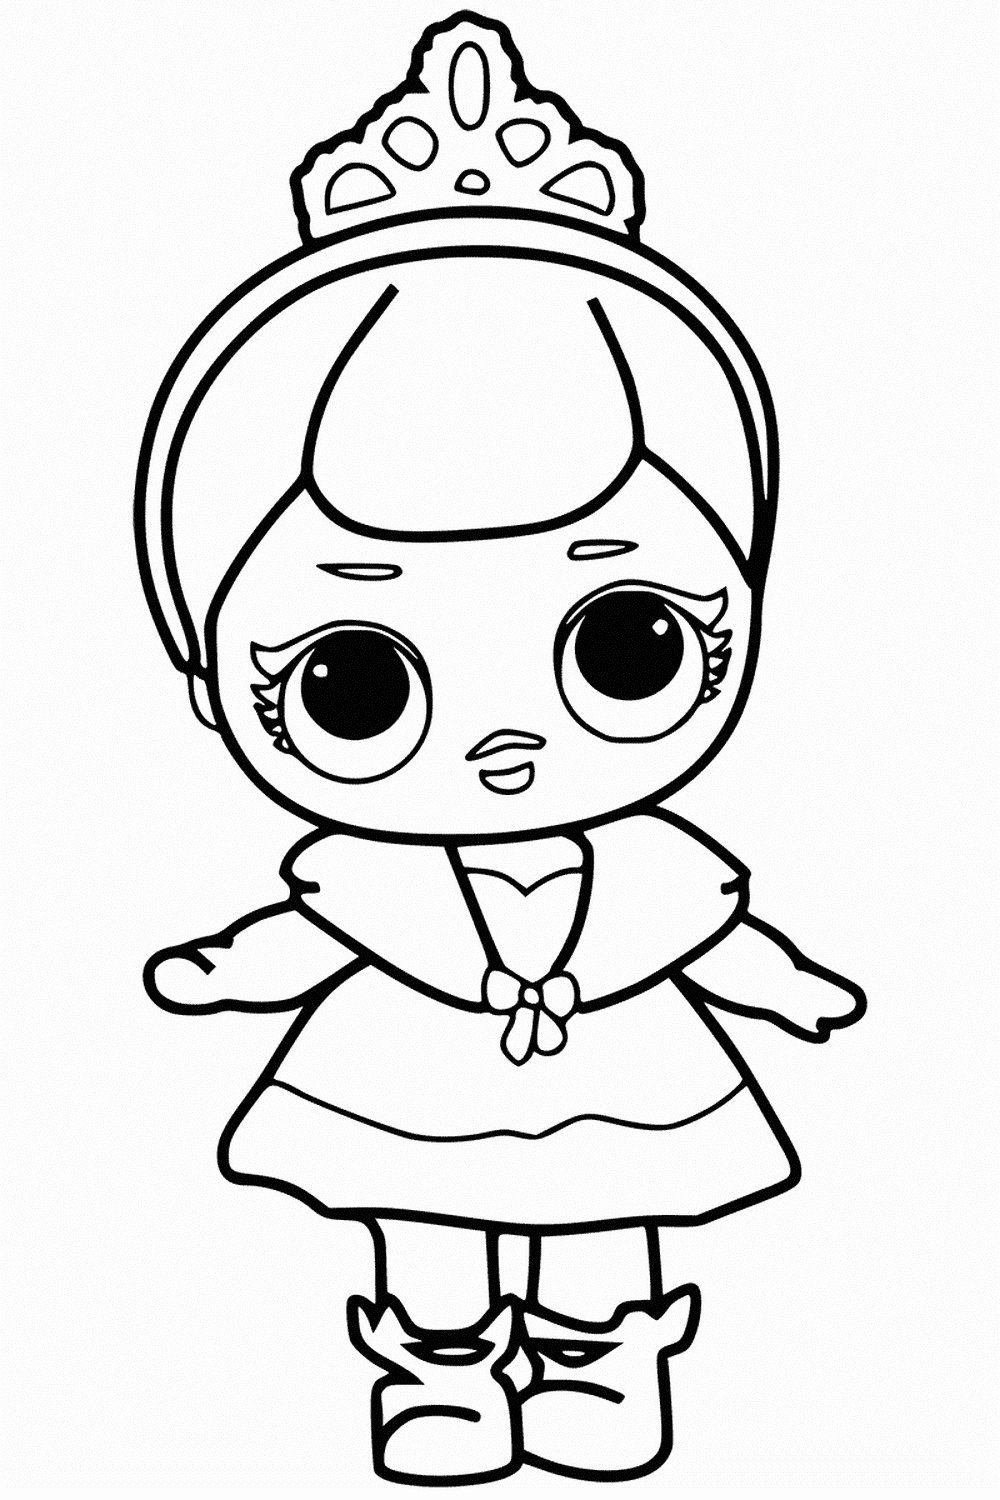 Bee Coloring Pages For Adults Inspirational Coloring Pages Queen Lol Doll Coloring Page Relaxation In 2020 Cartoon Coloring Pages Bee Coloring Pages Lol Dolls